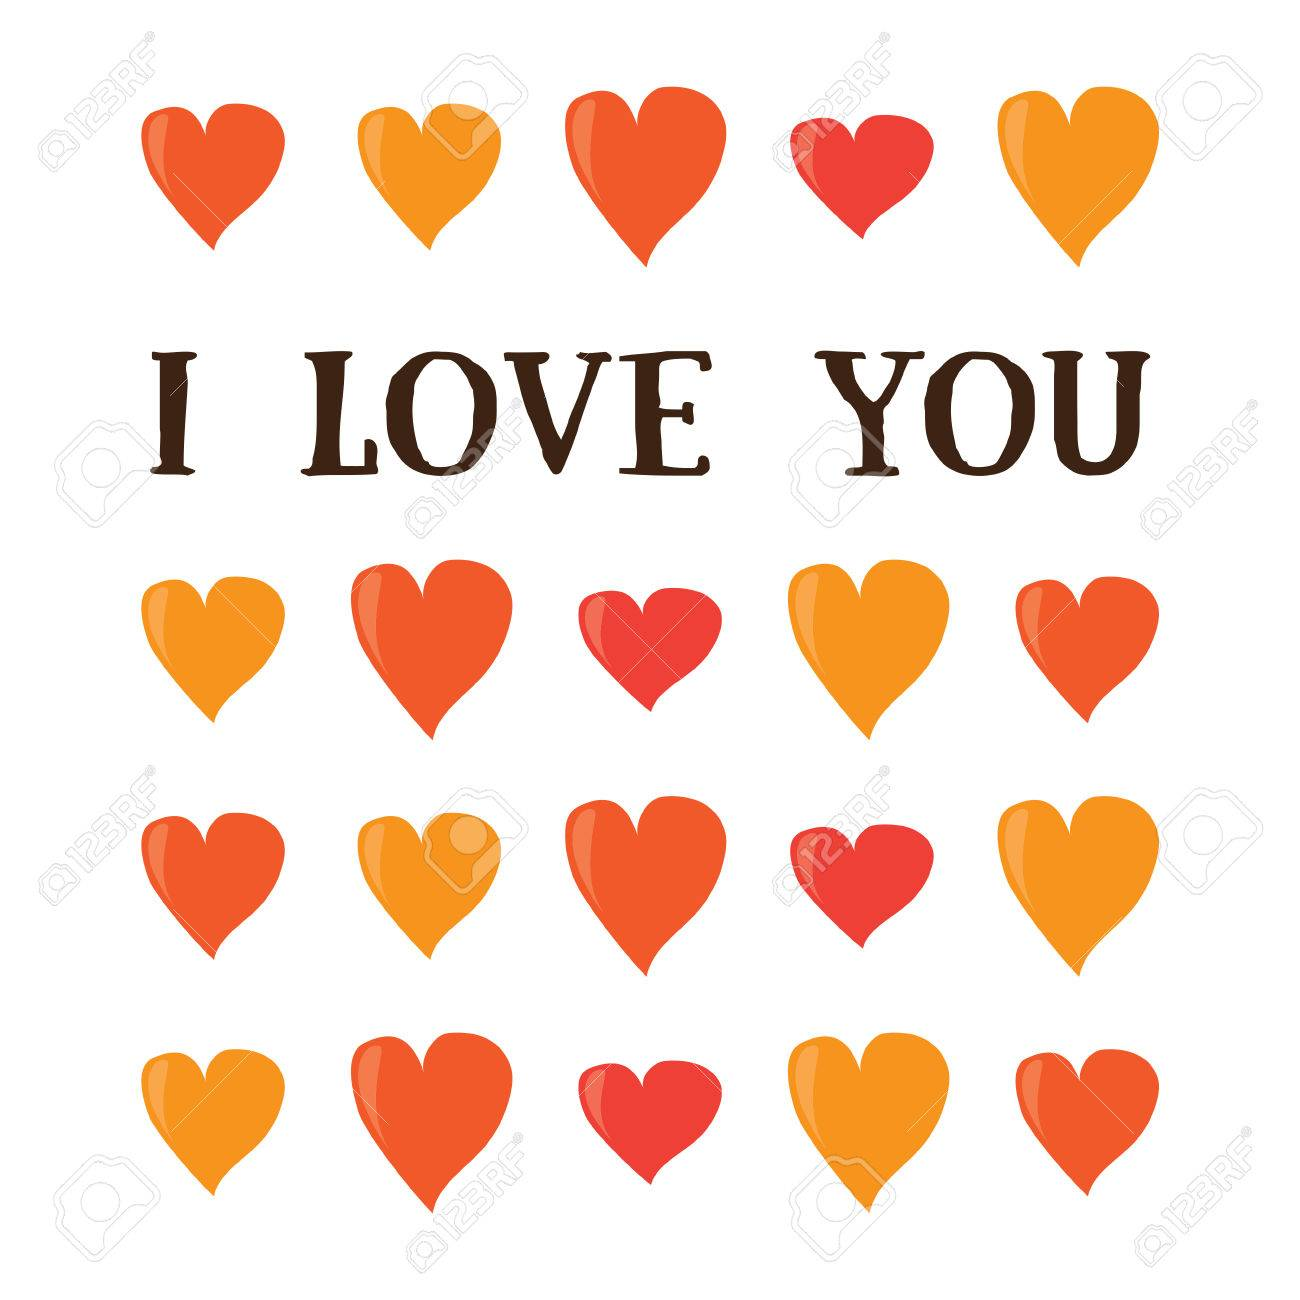 I Love You. Cartoon Valentines Day Romantic Greeting Card Template ...